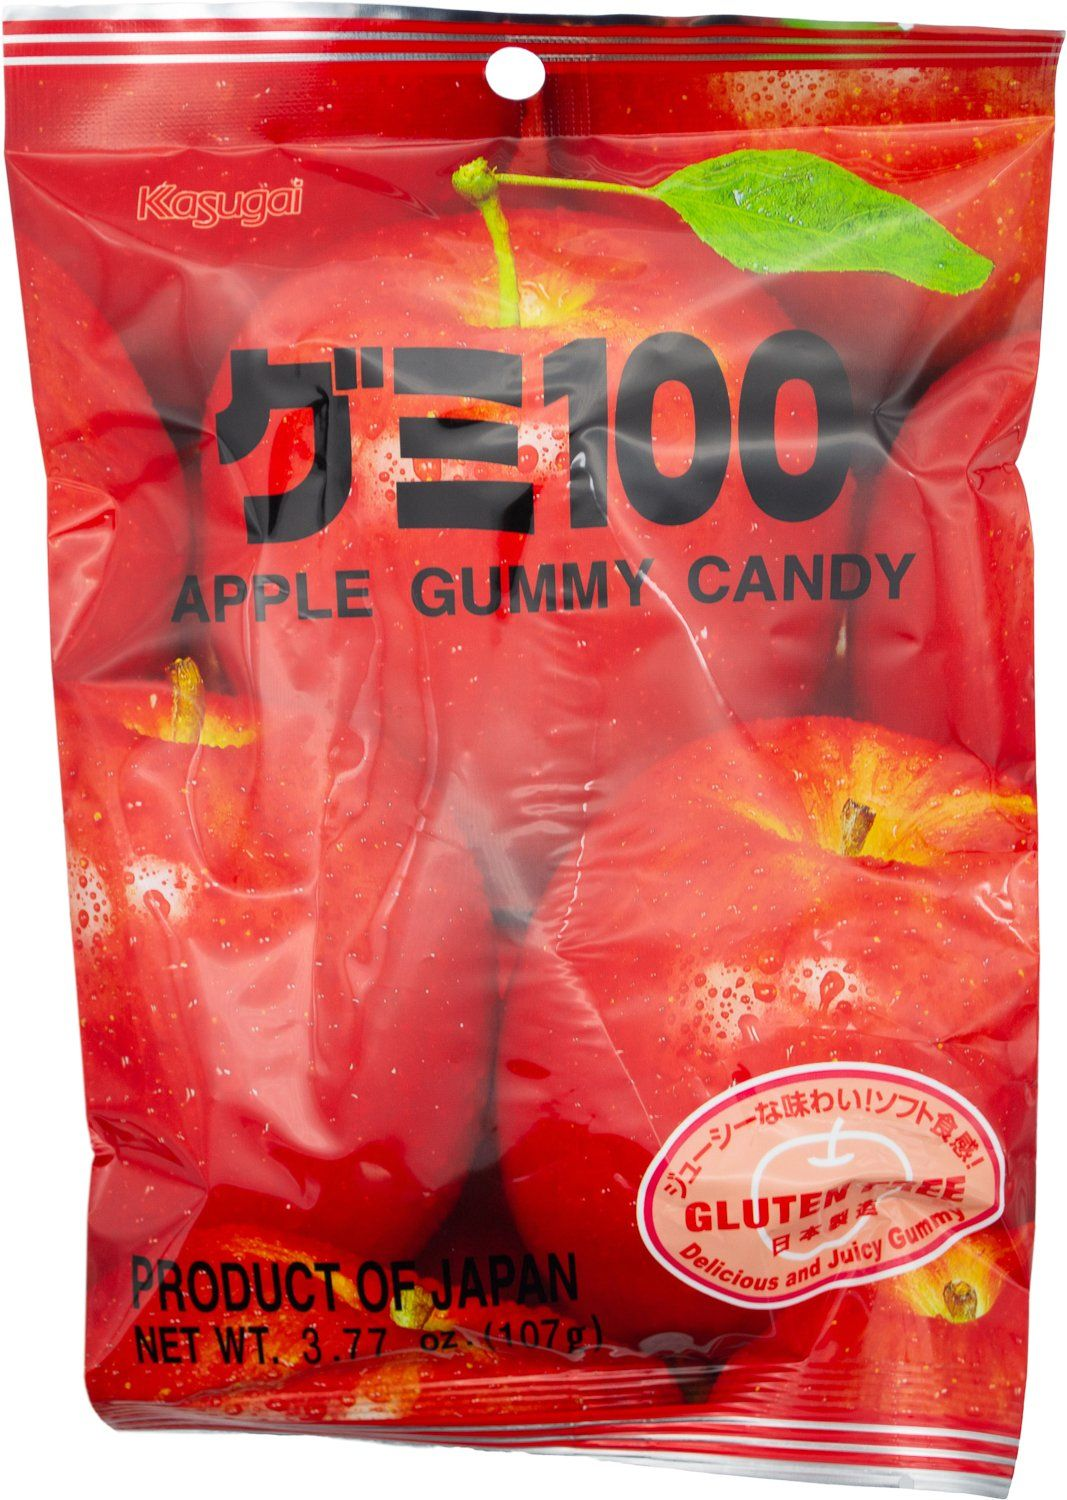 Kasugai Gummy Candy Kasugai Apple 3.77 Ounce